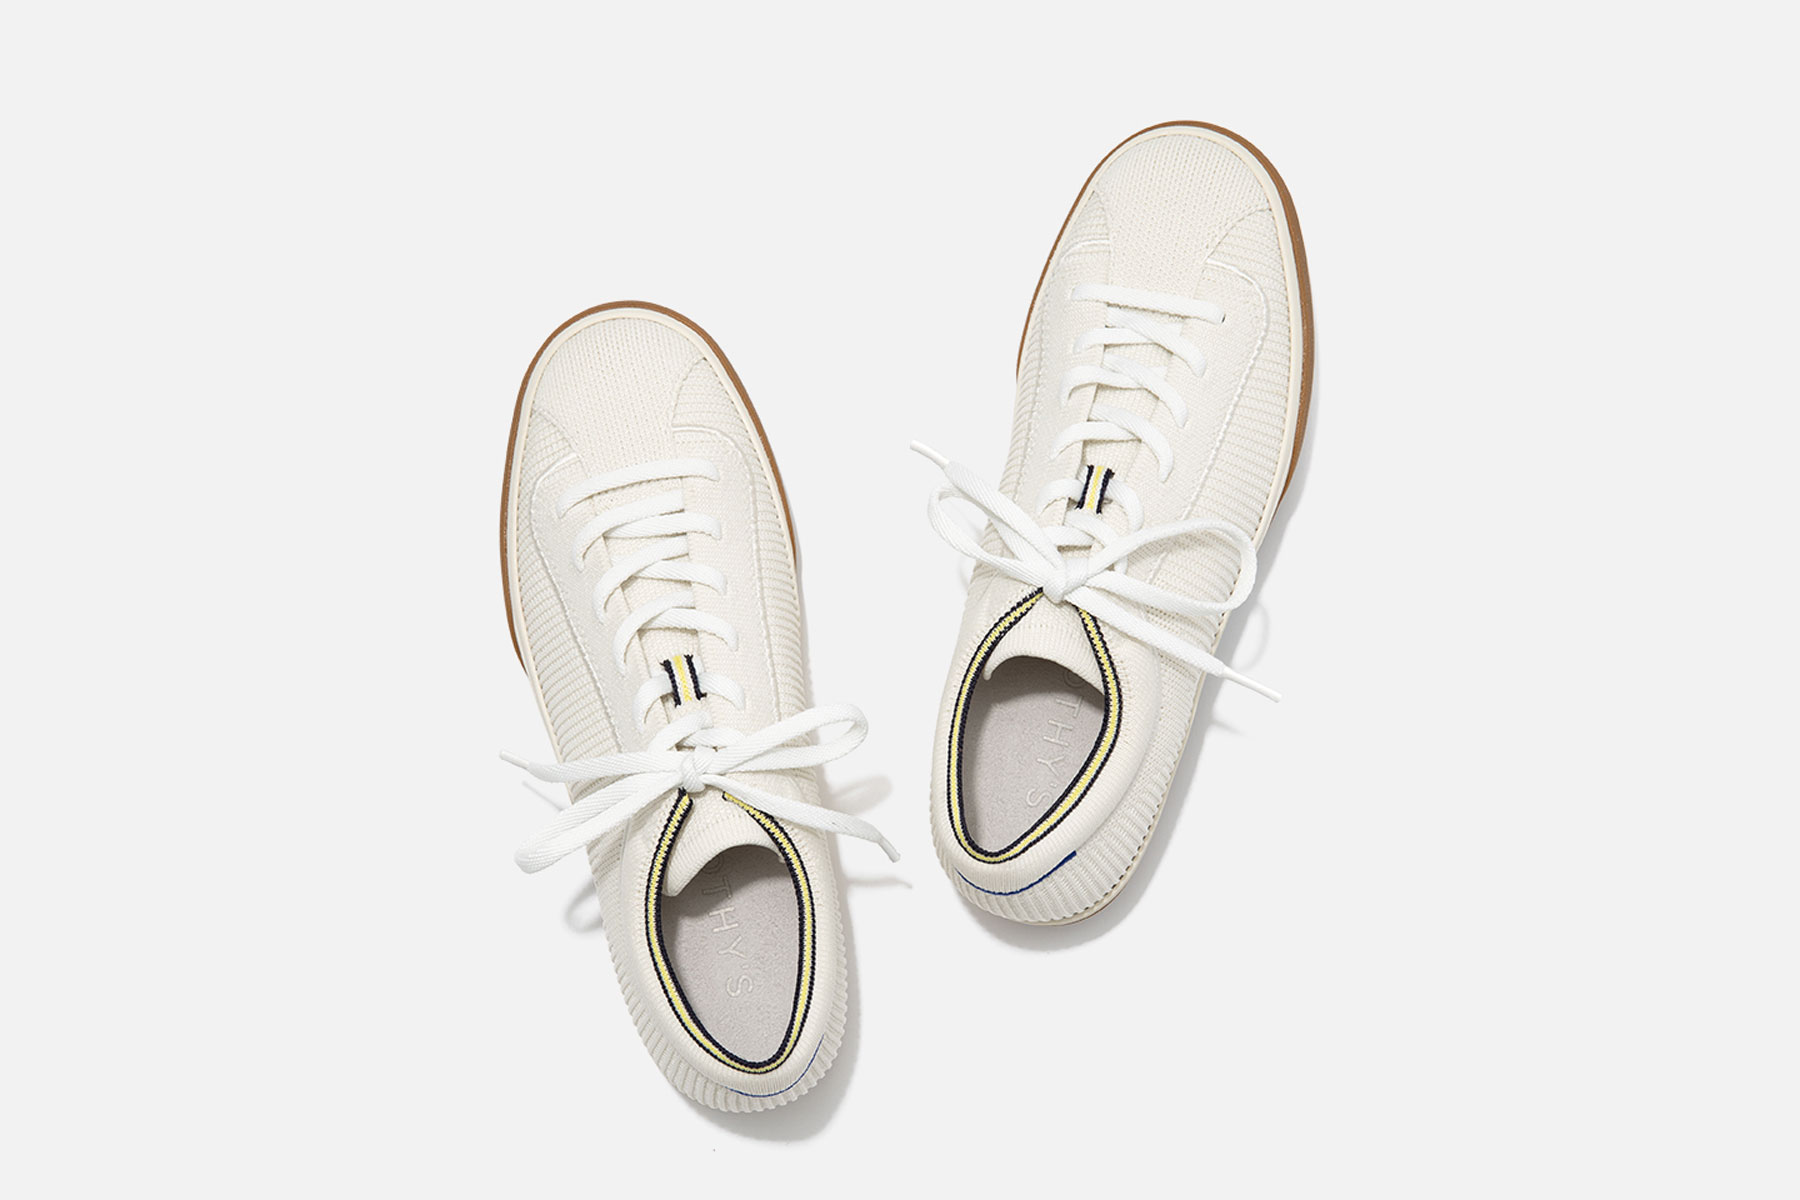 Cream-colored lace up sneakers